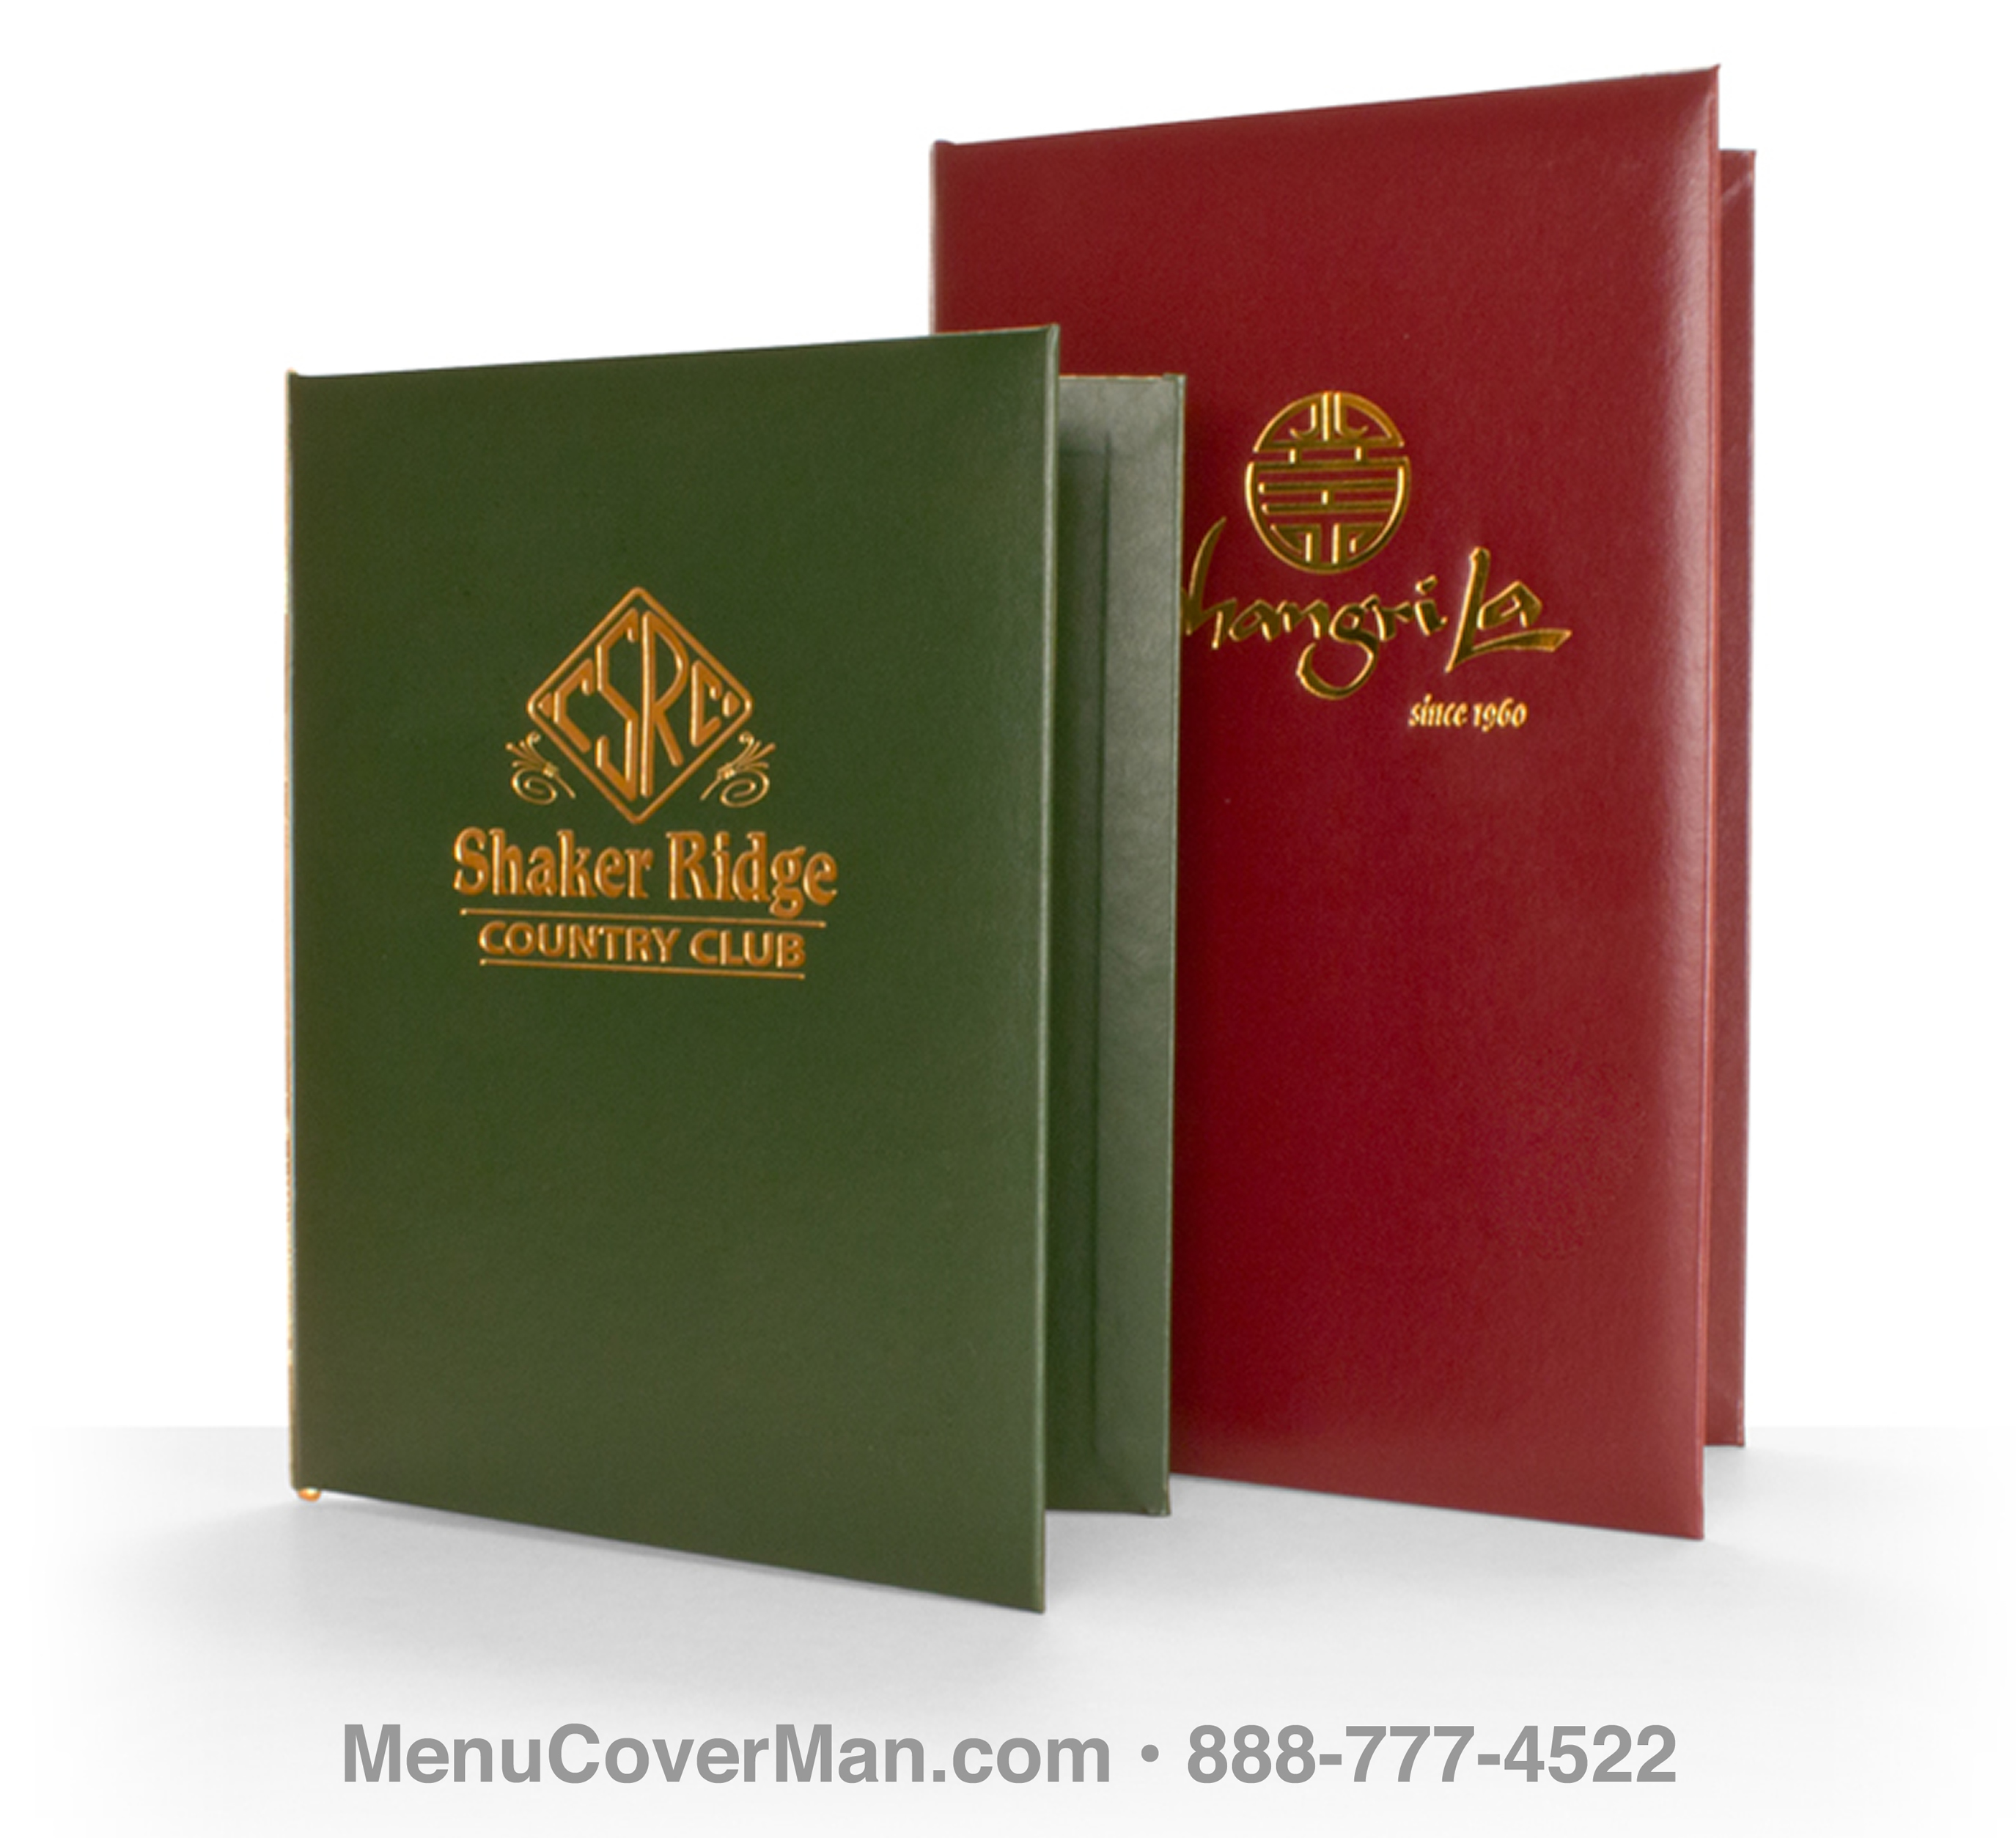 Augusta Menu Covers Frontspiece.